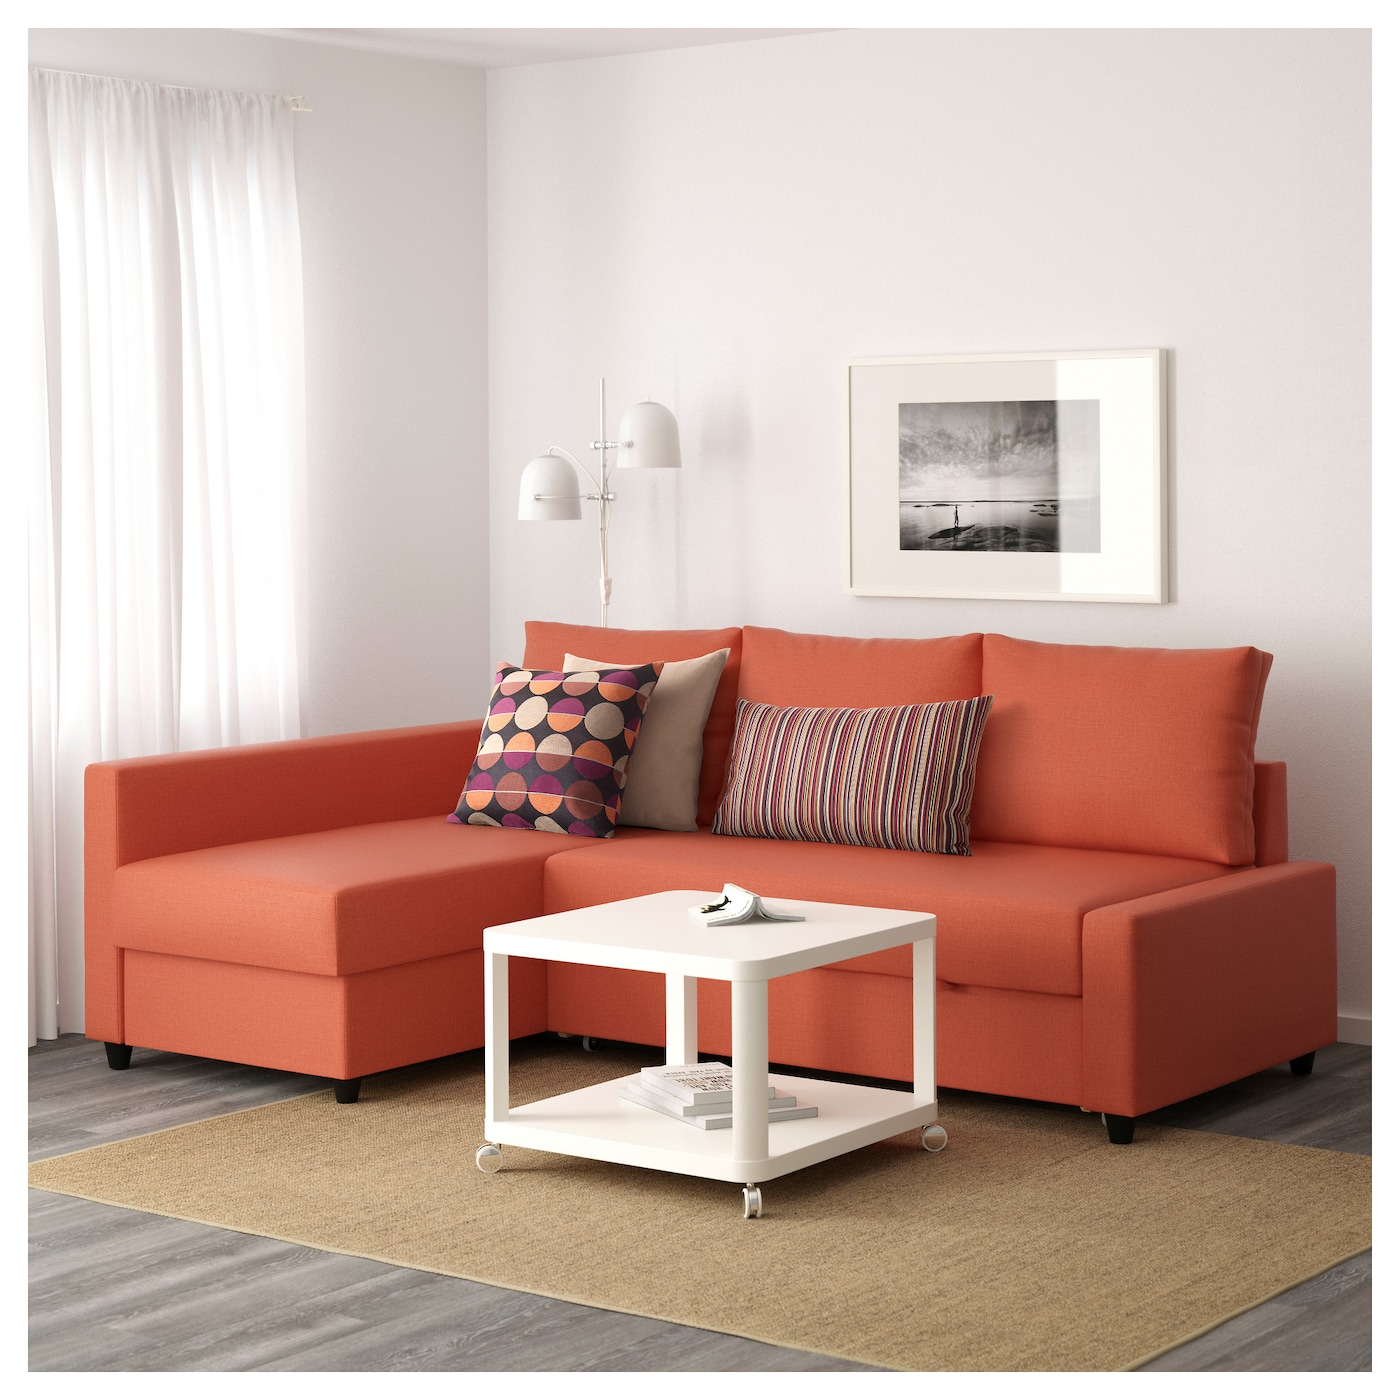 Ikea Poang Chair Max Weight ~ IKEA FRIHETEN corner sofa bed with storage Sofa, chaise longue and